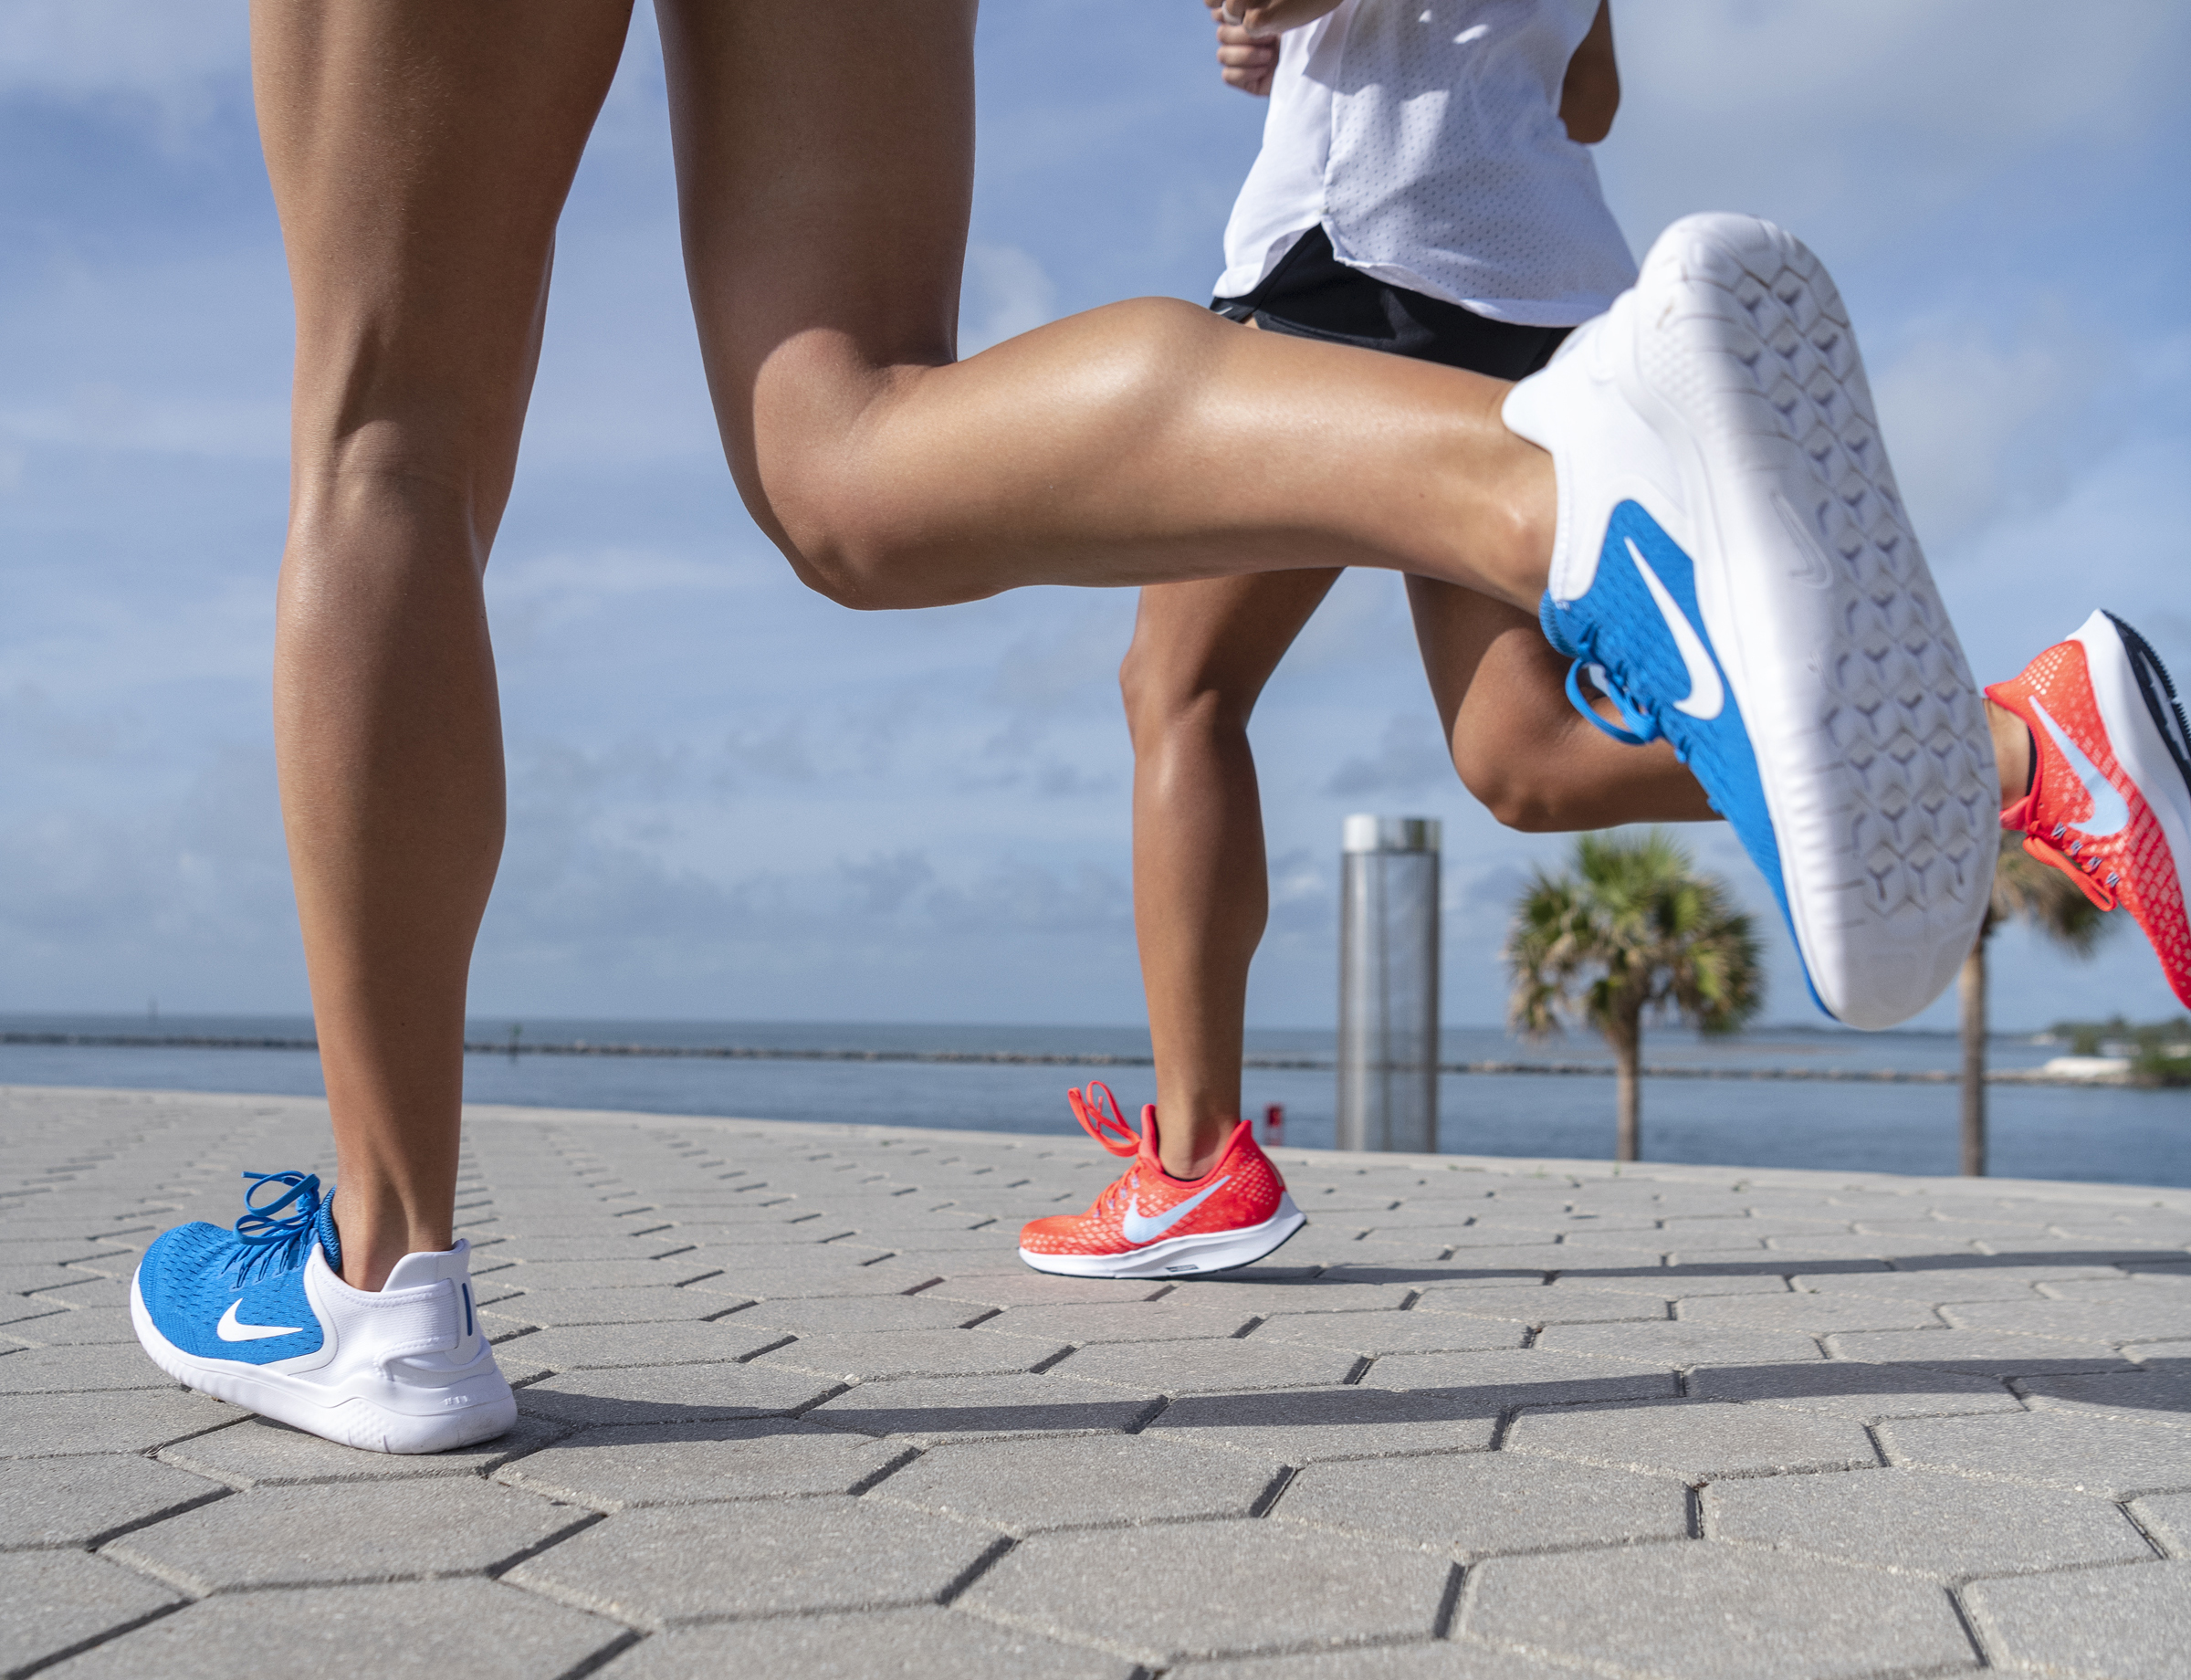 A close up on the legs of two runners wearing Nike, mid-stride, as they run along the water.